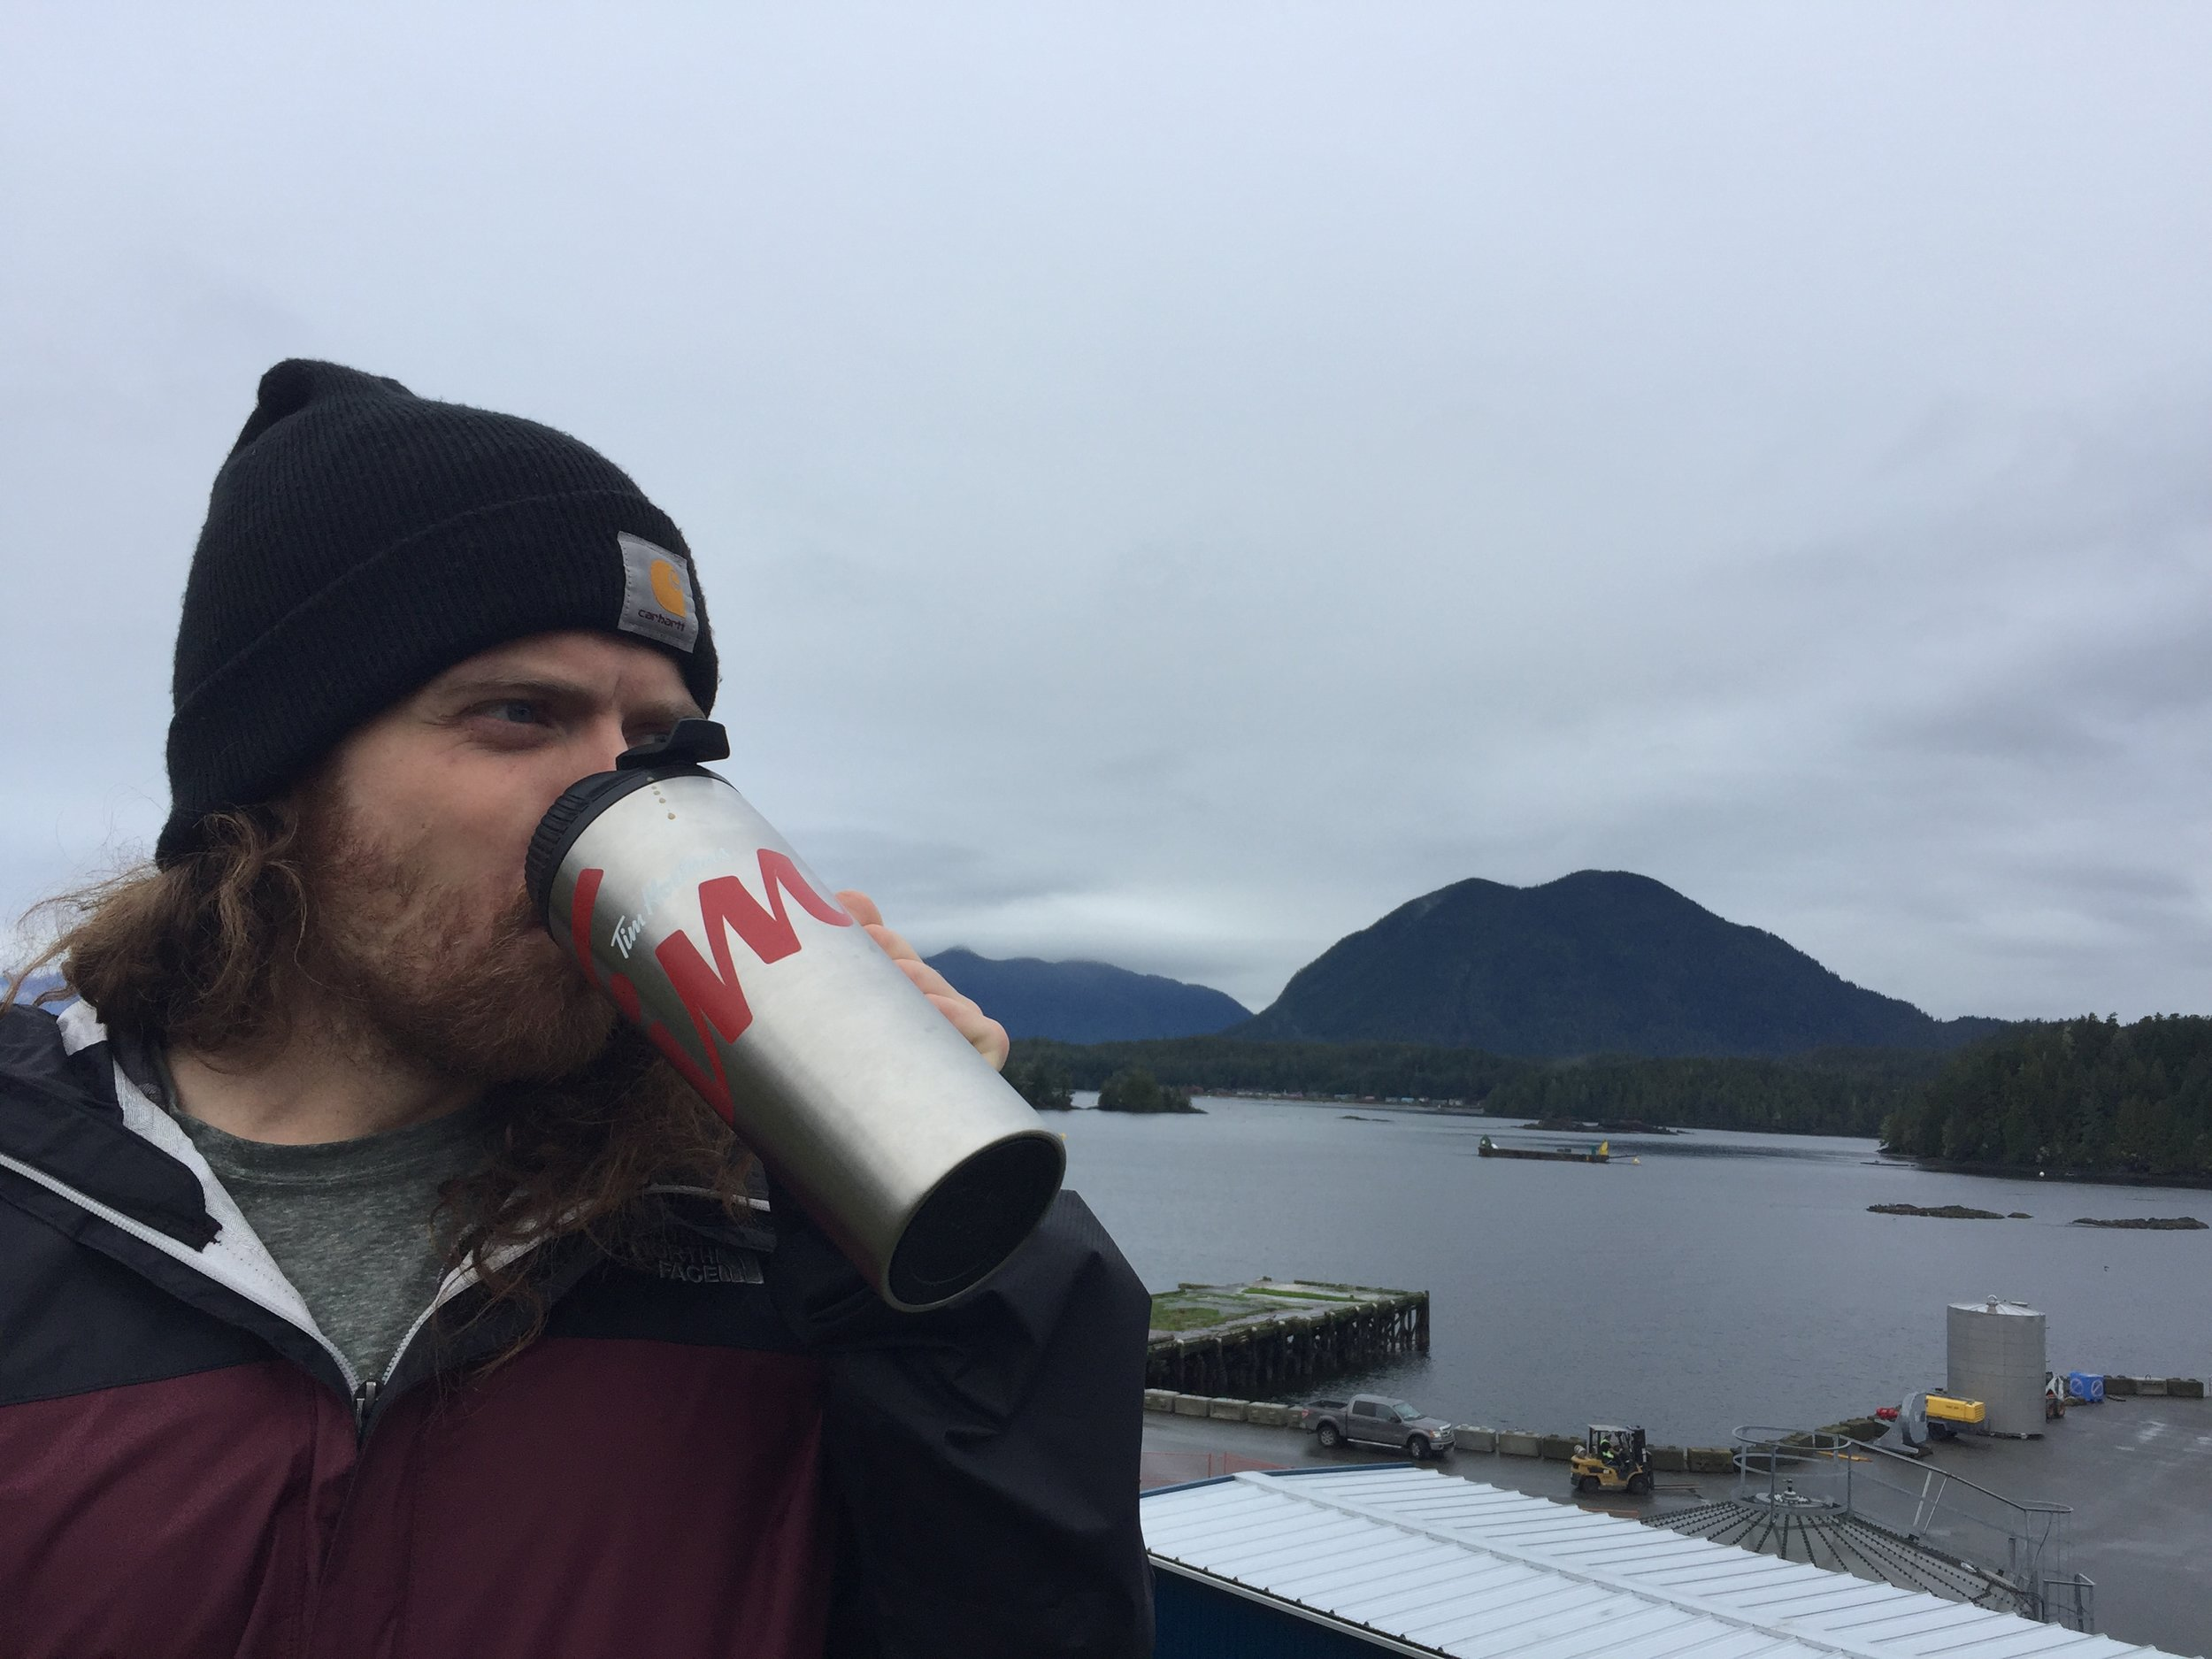 Sustainably drinking Timmys